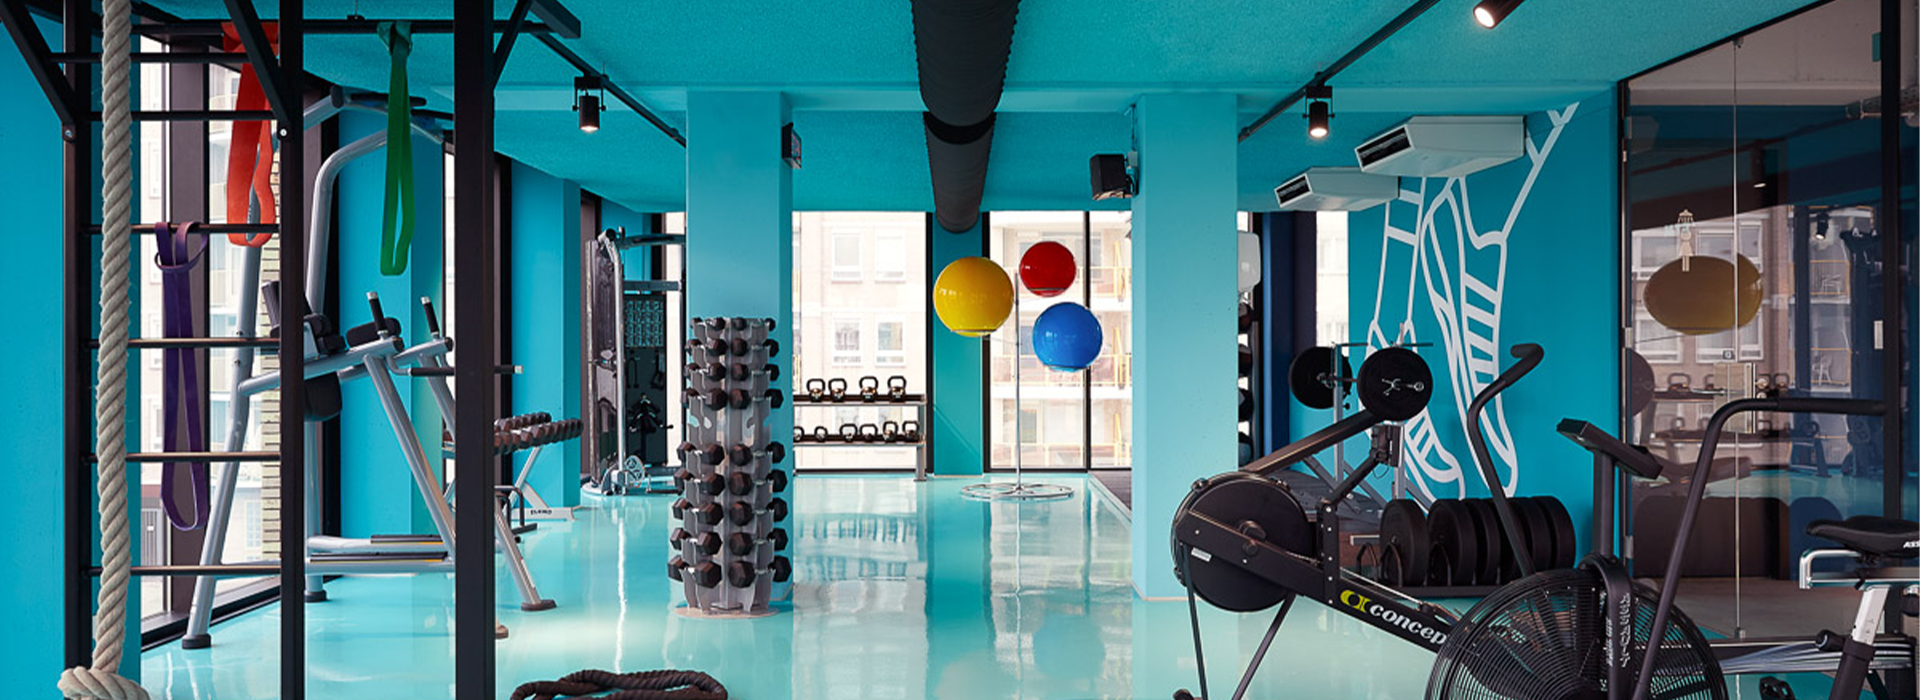 The Student Hotel Blue Gym